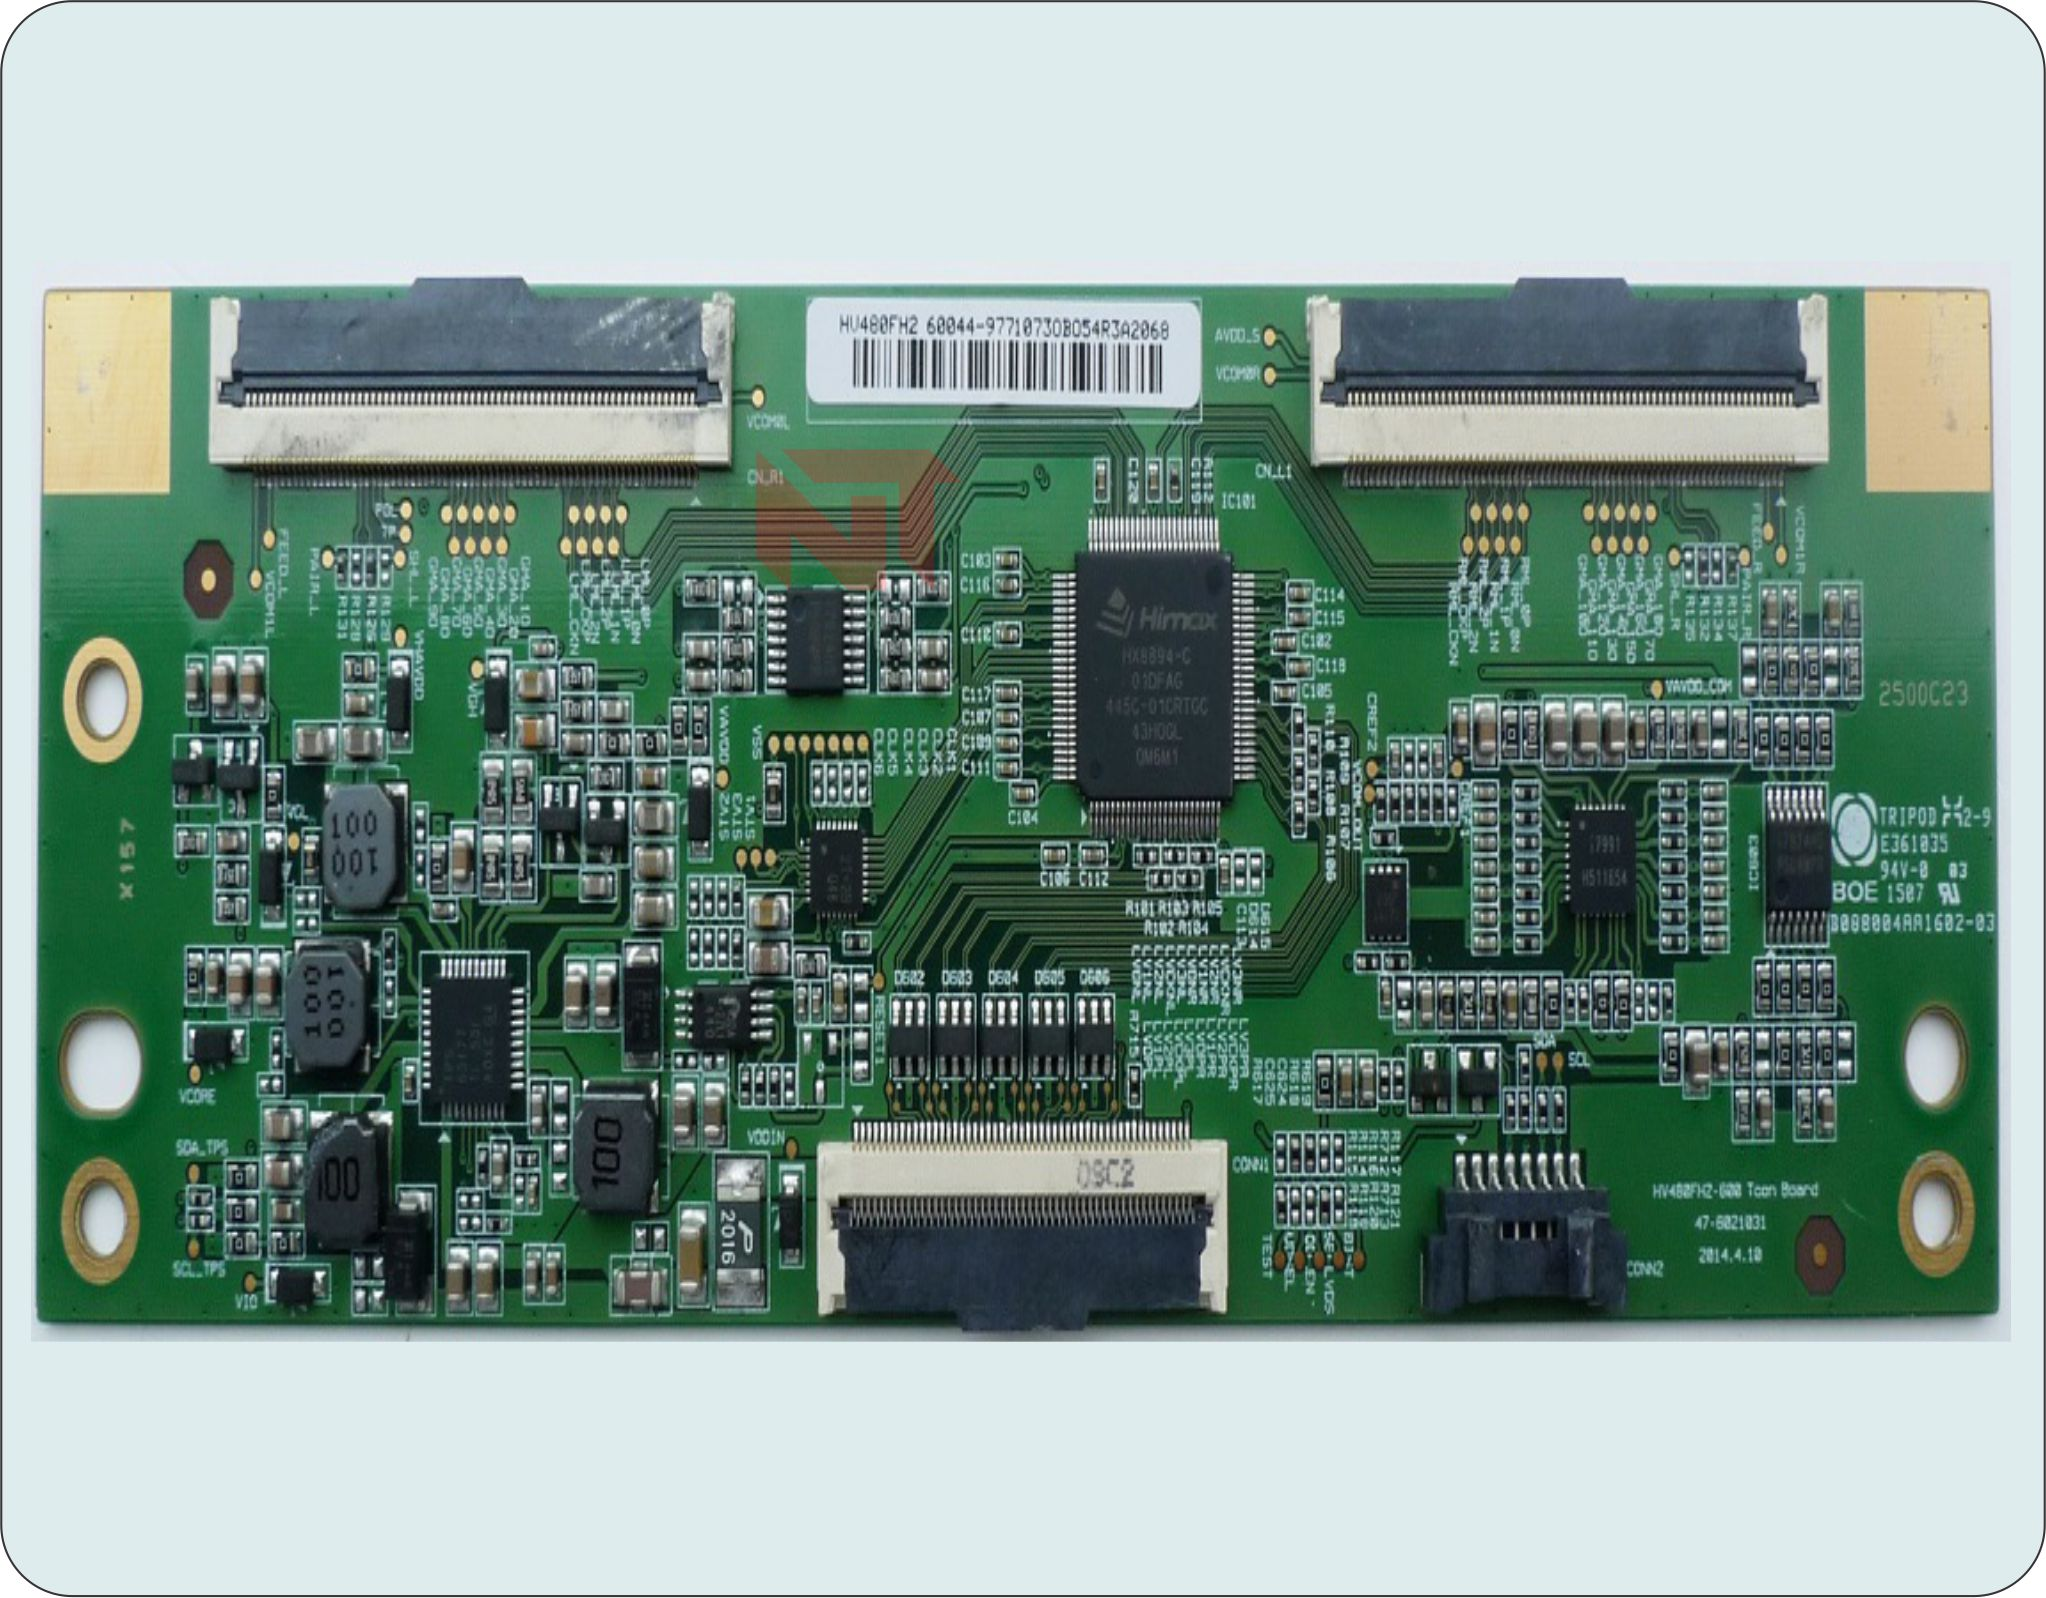 Tcon Boards Archives Electro Help 32 Inch Philips Lcd Tv Power Supply Smps Schematic Hv480fh2 600 47 6021031 T Con Board